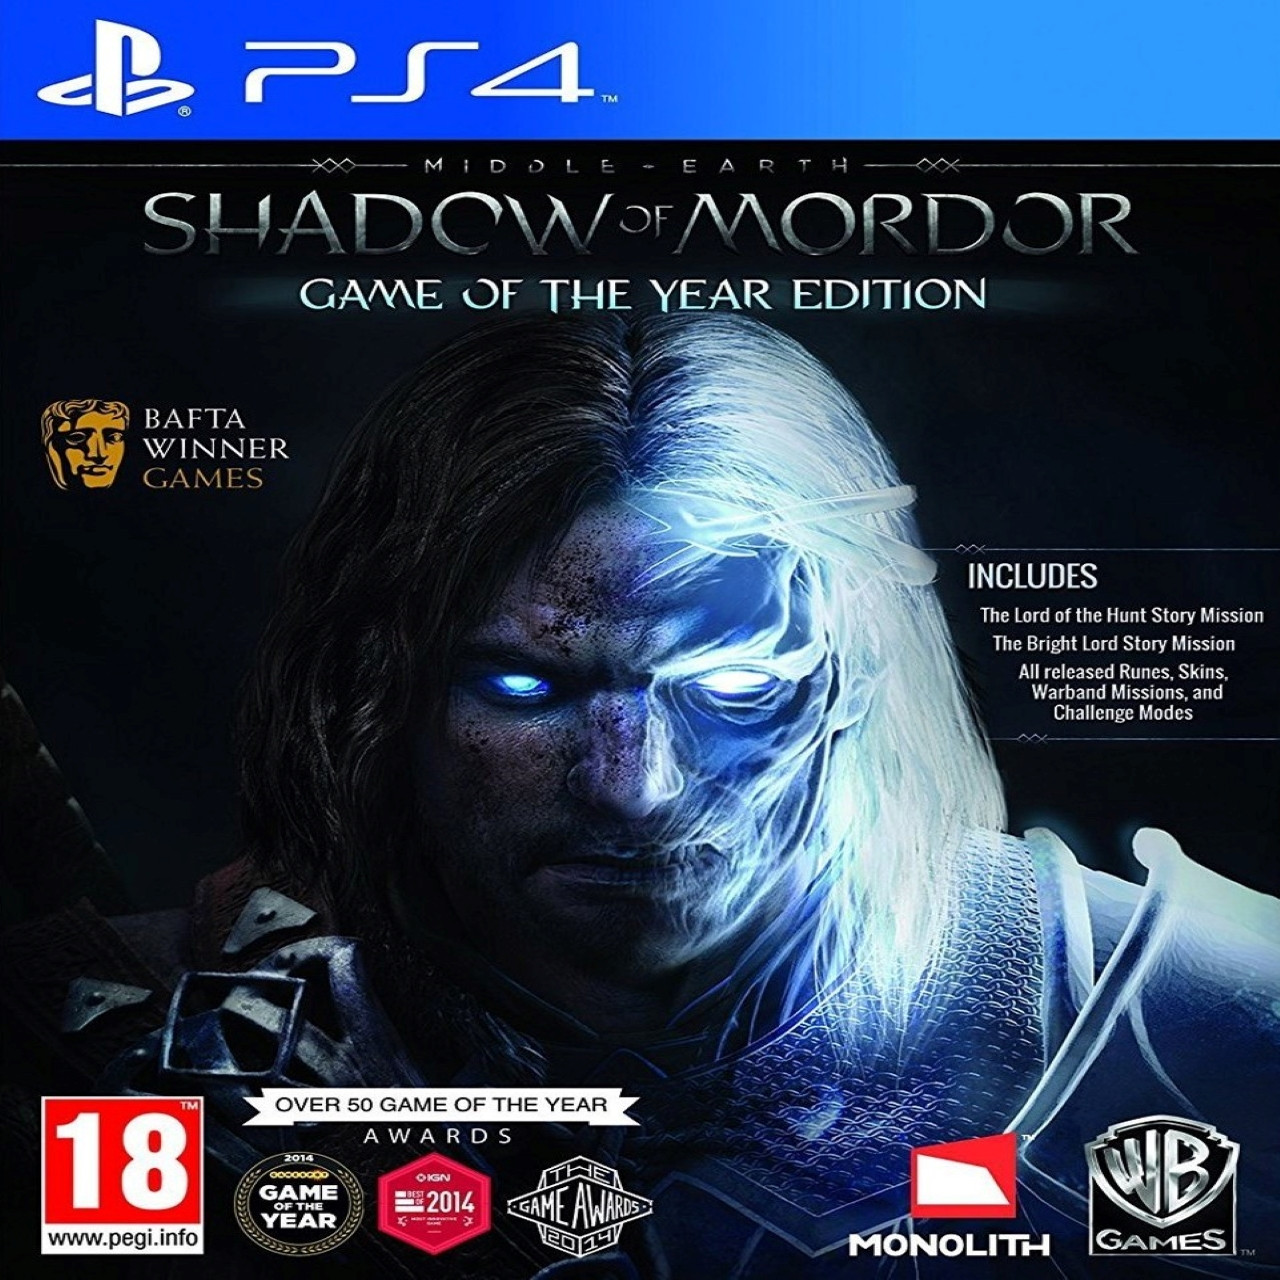 Middle-earth: Shadow of Mordor Game of the Year Edition RUS PS4 (NEW)